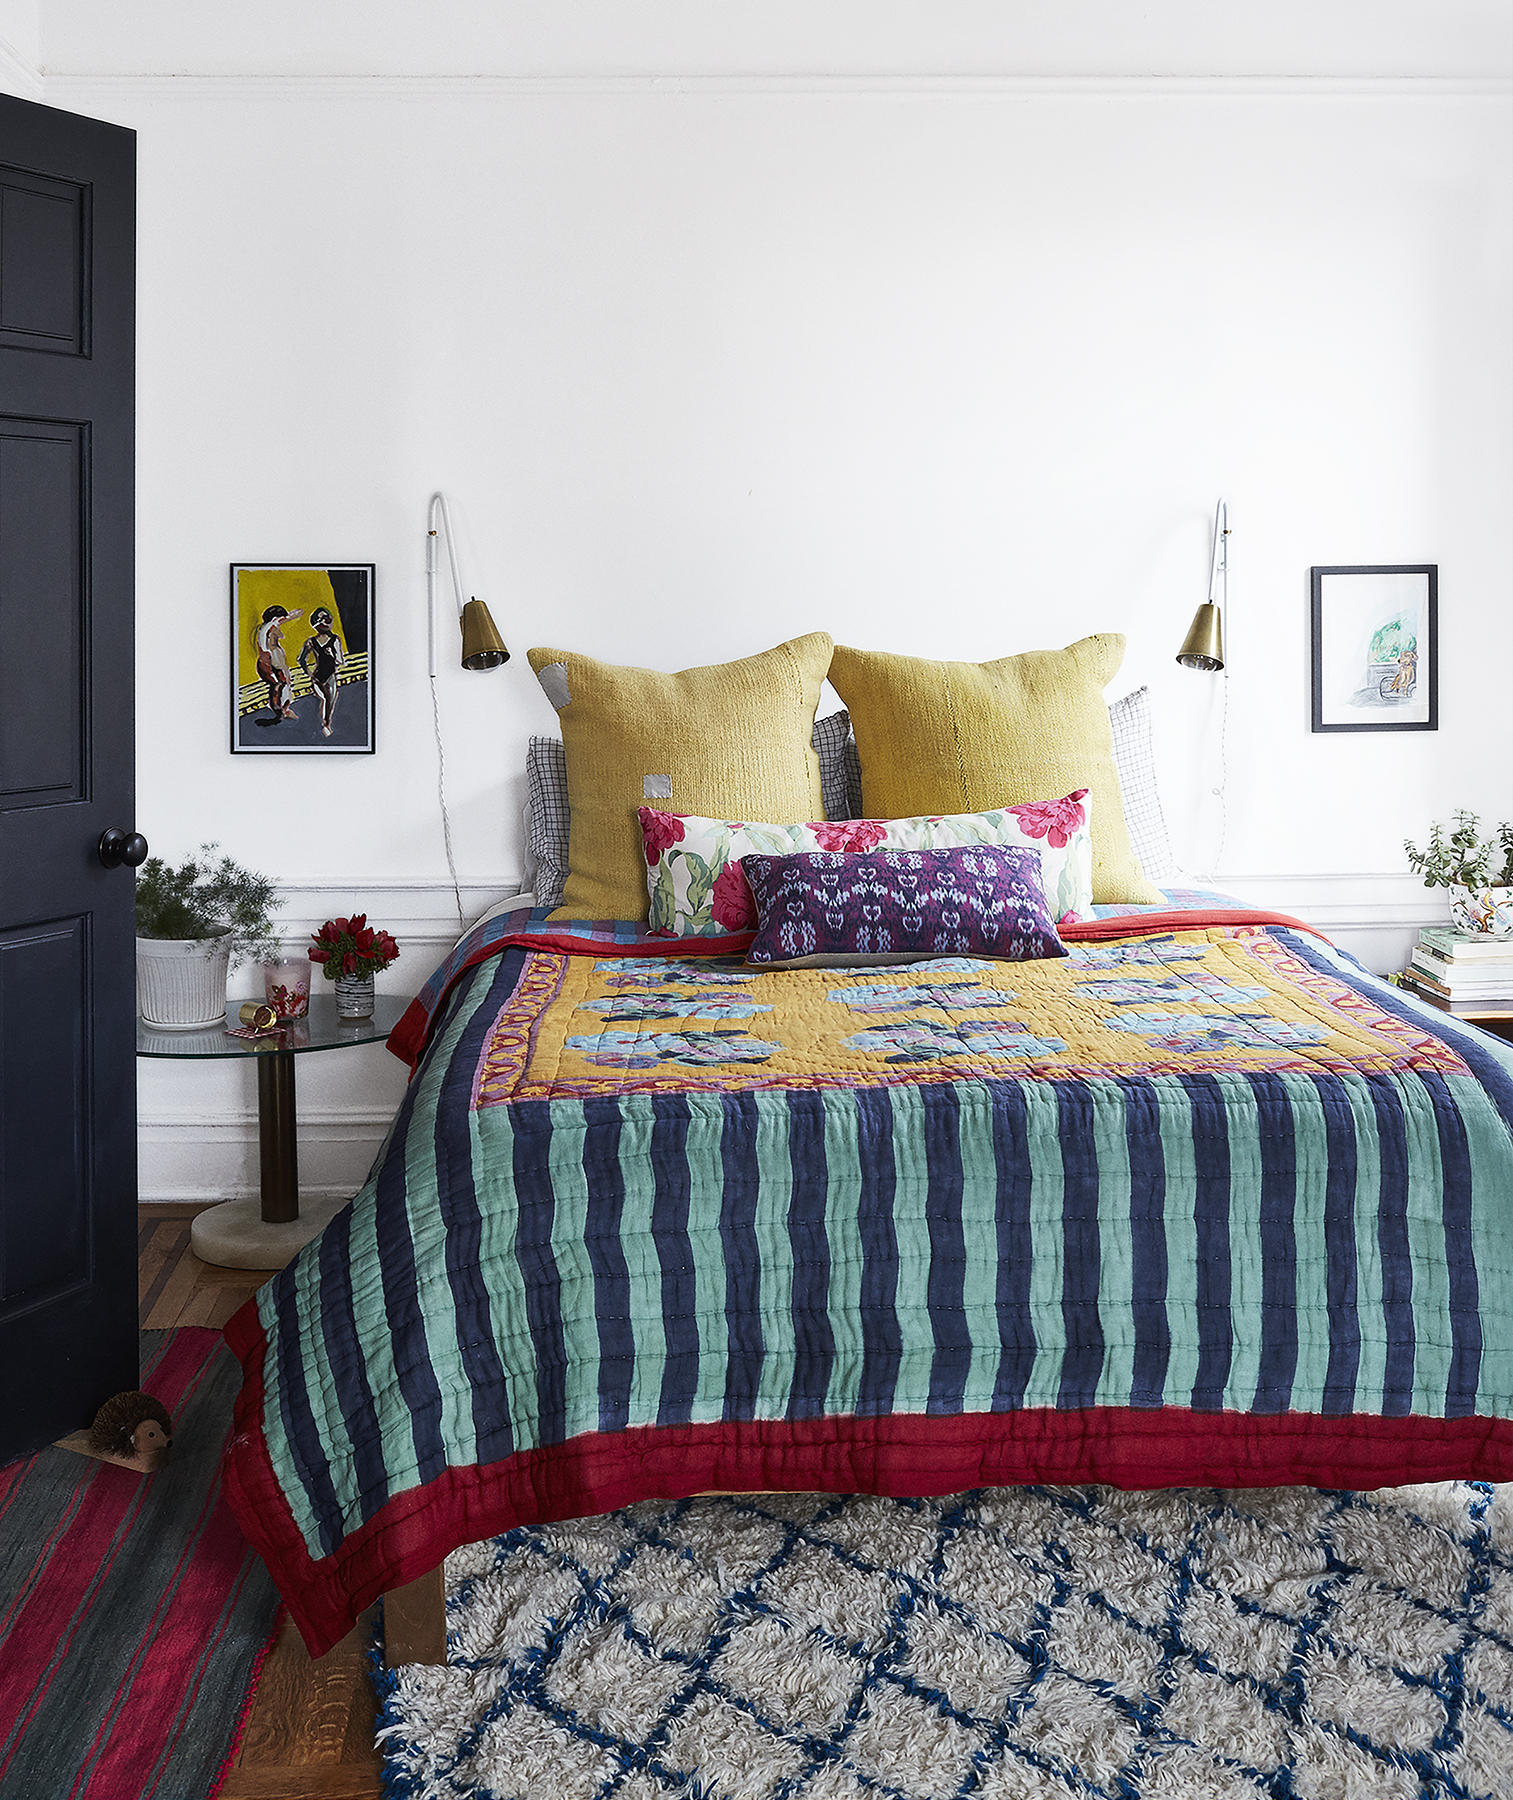 Bedroom with bold colors and patterns